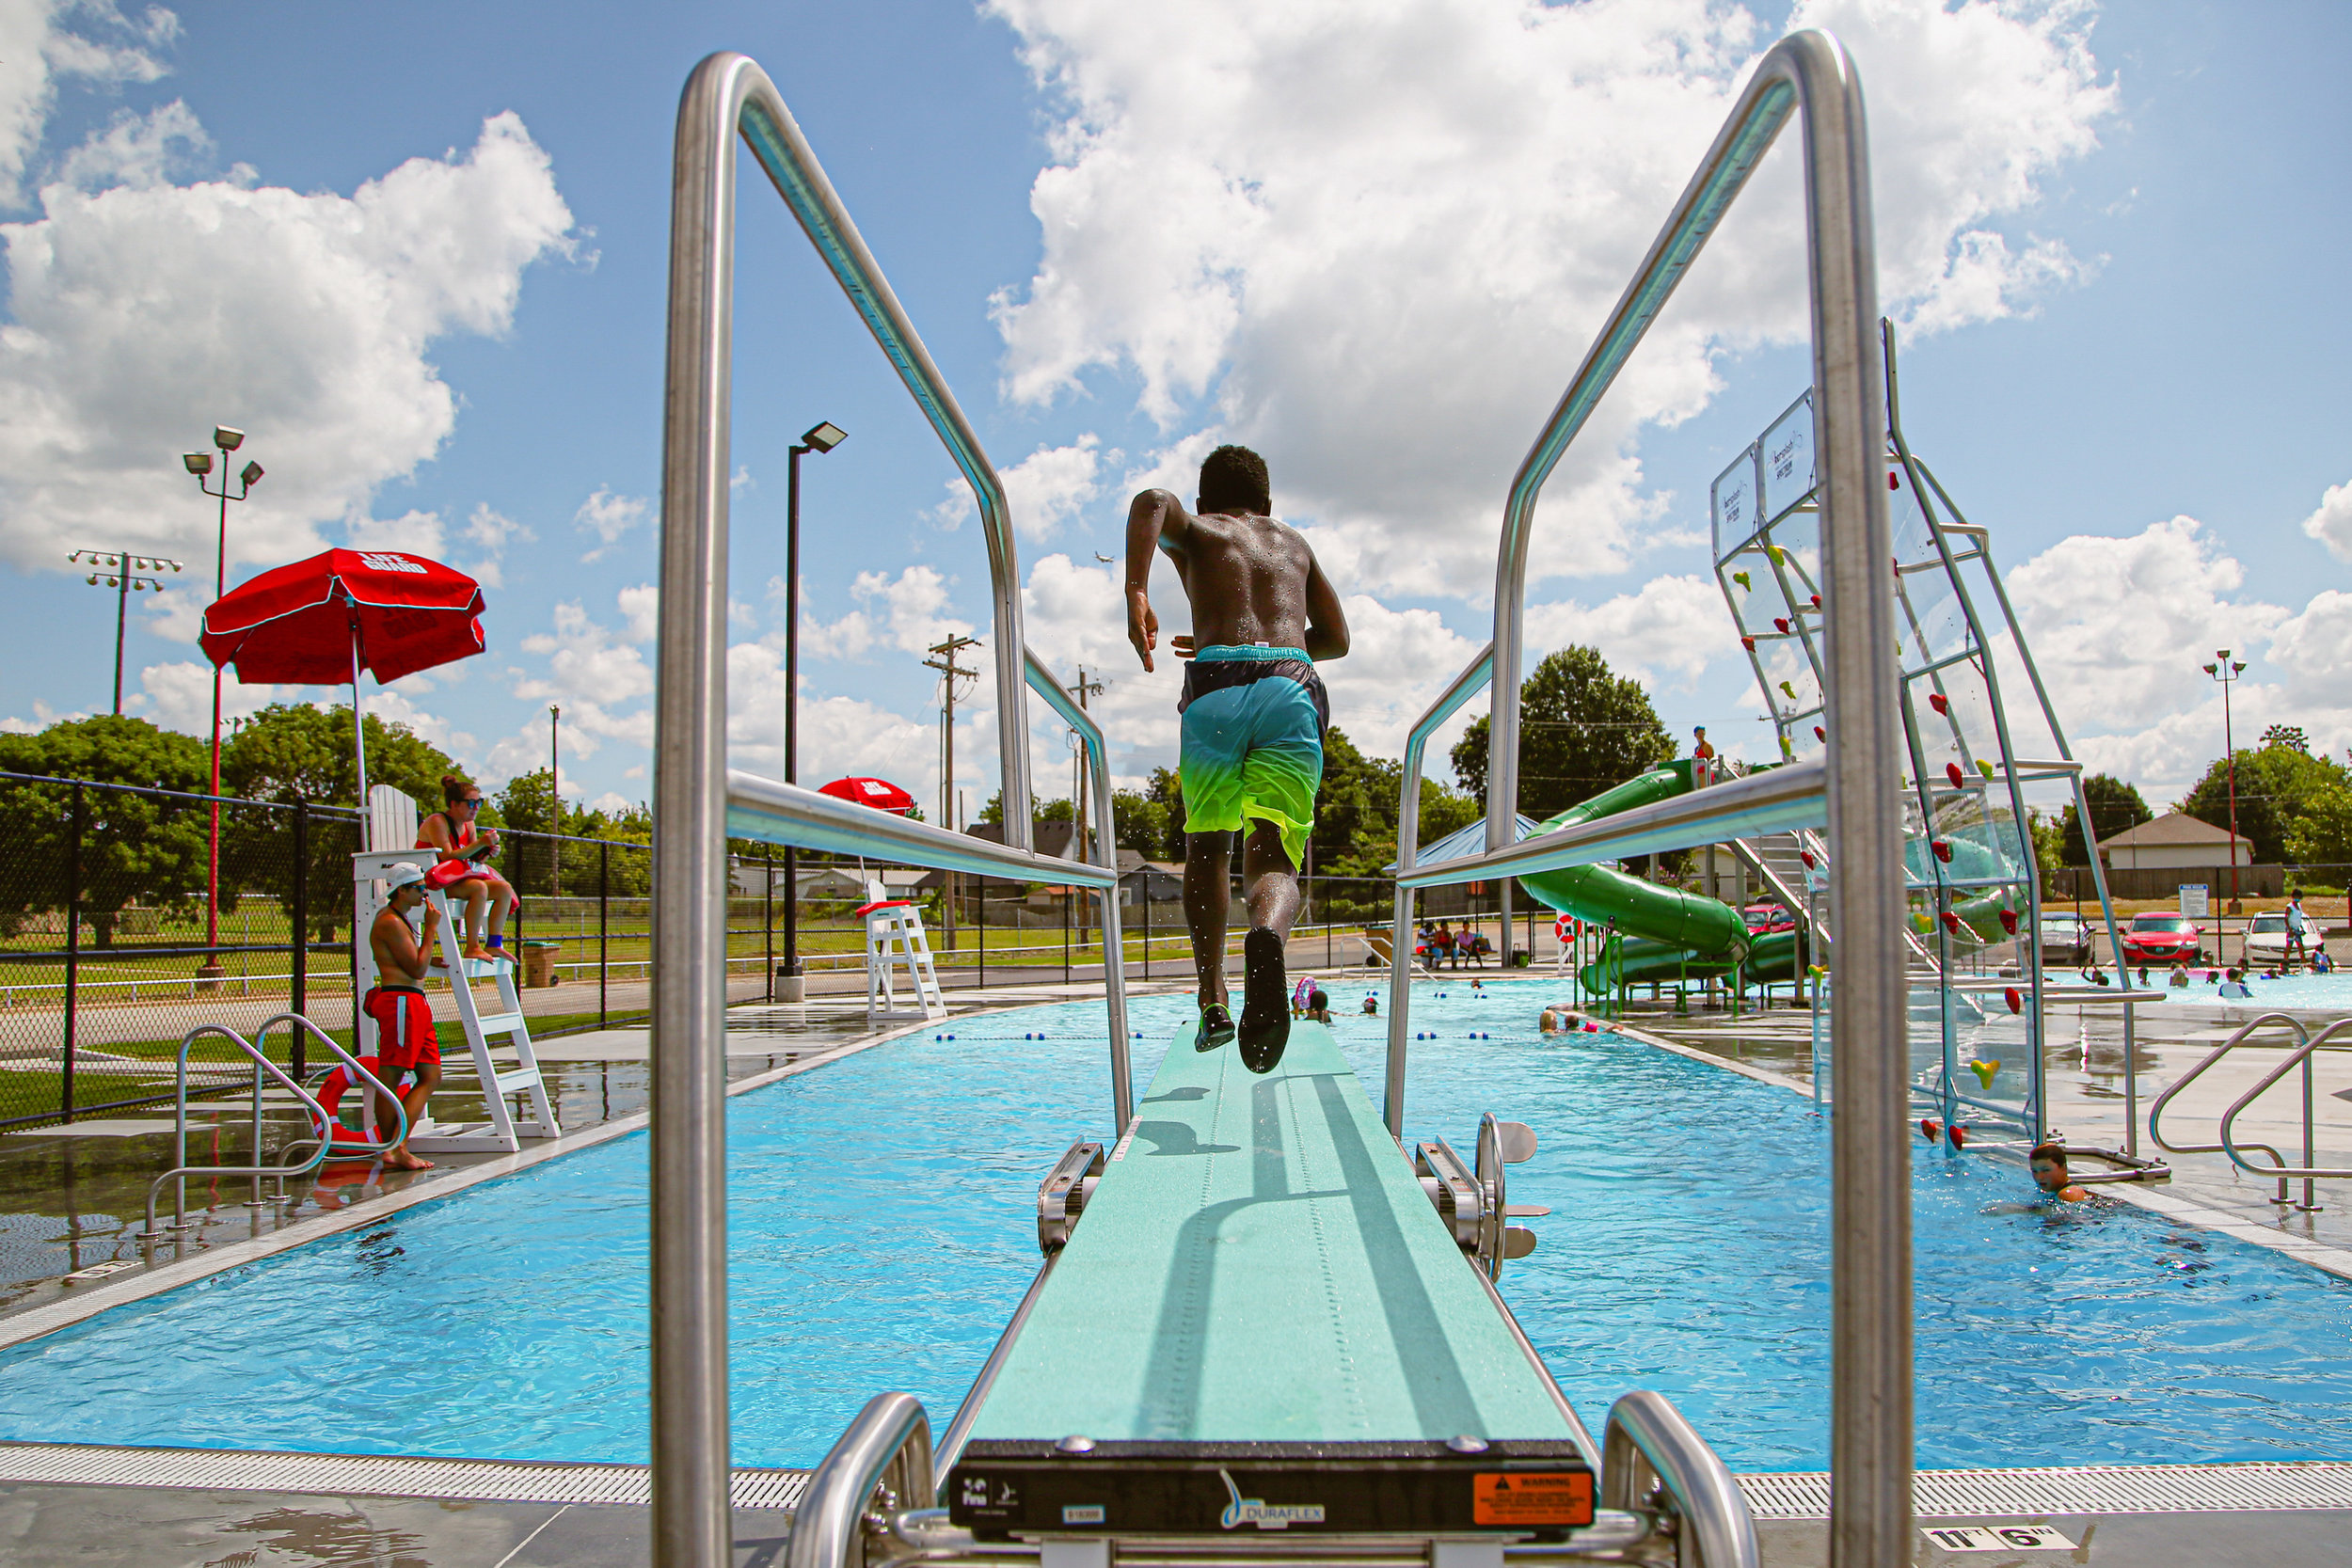 Raion Hill runs off the diving board into the newly-opened pool at Lacy Park in Tulsa on July 12, 2019.